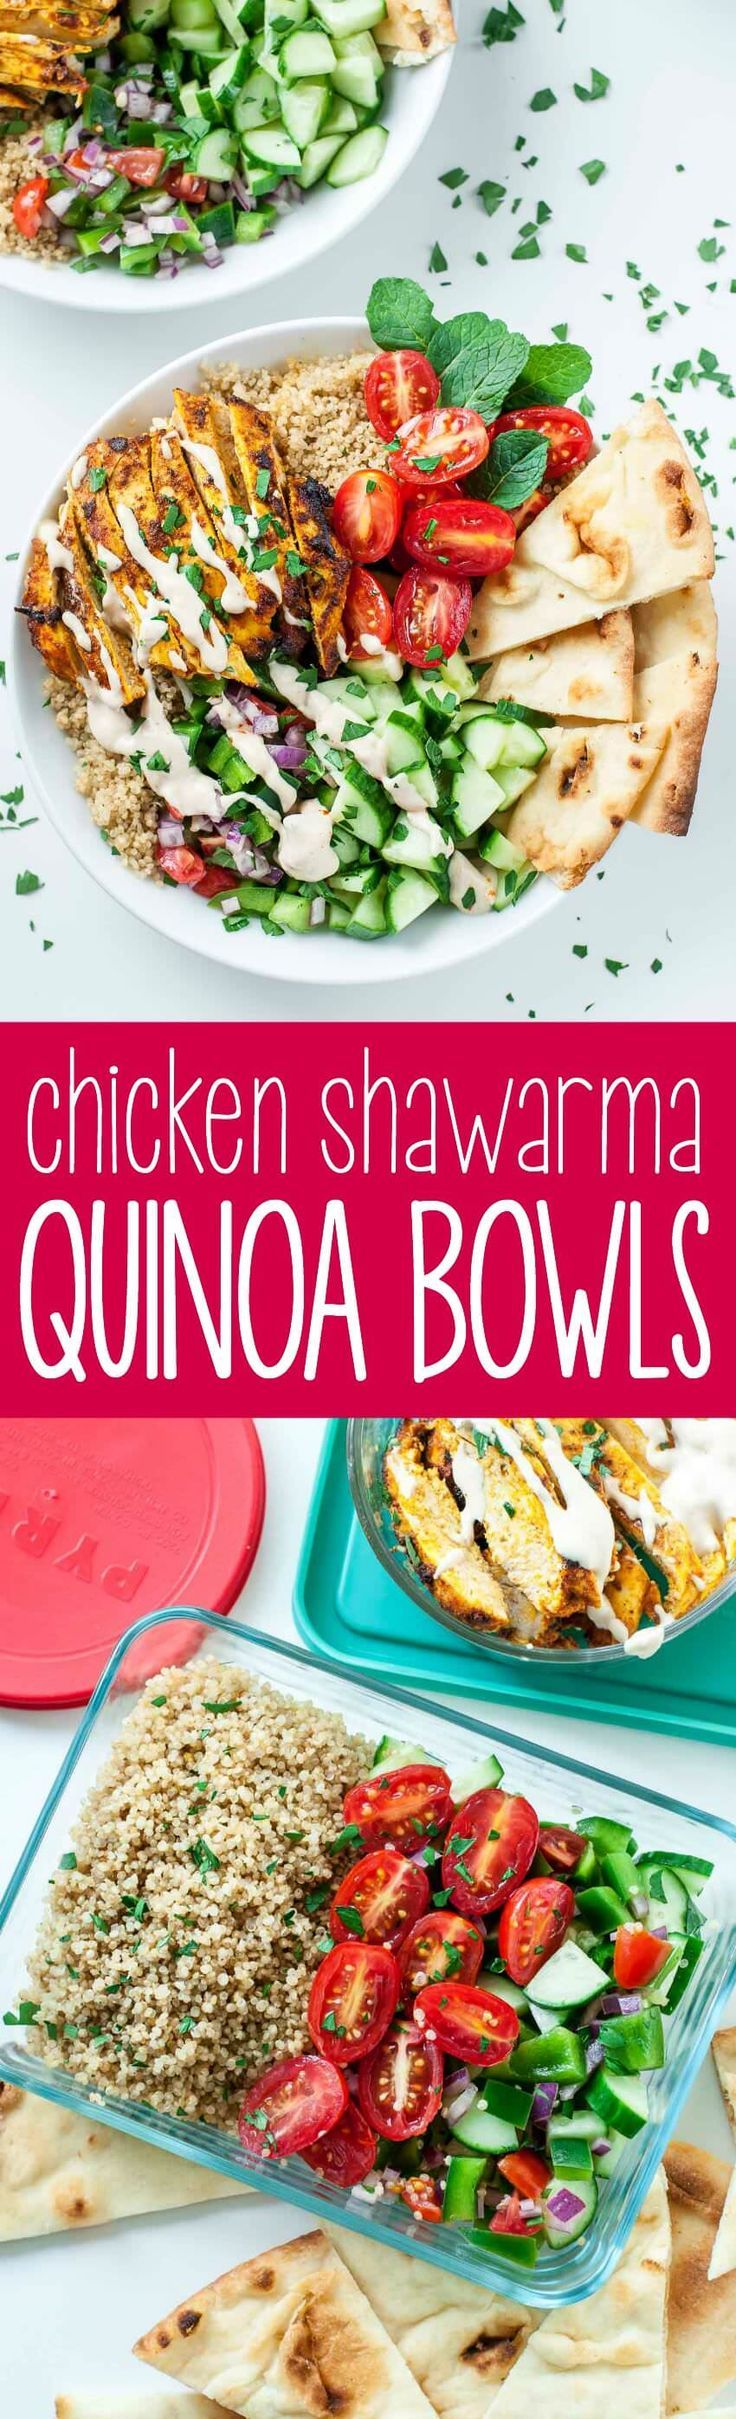 We're loving this recipe for healthy Chicken Shawarma Quinoa Bowls with a super easy hack for creating make-ahead lunches for work or school. The flavors are out of this world!! Vegetarian + Vegan versions available